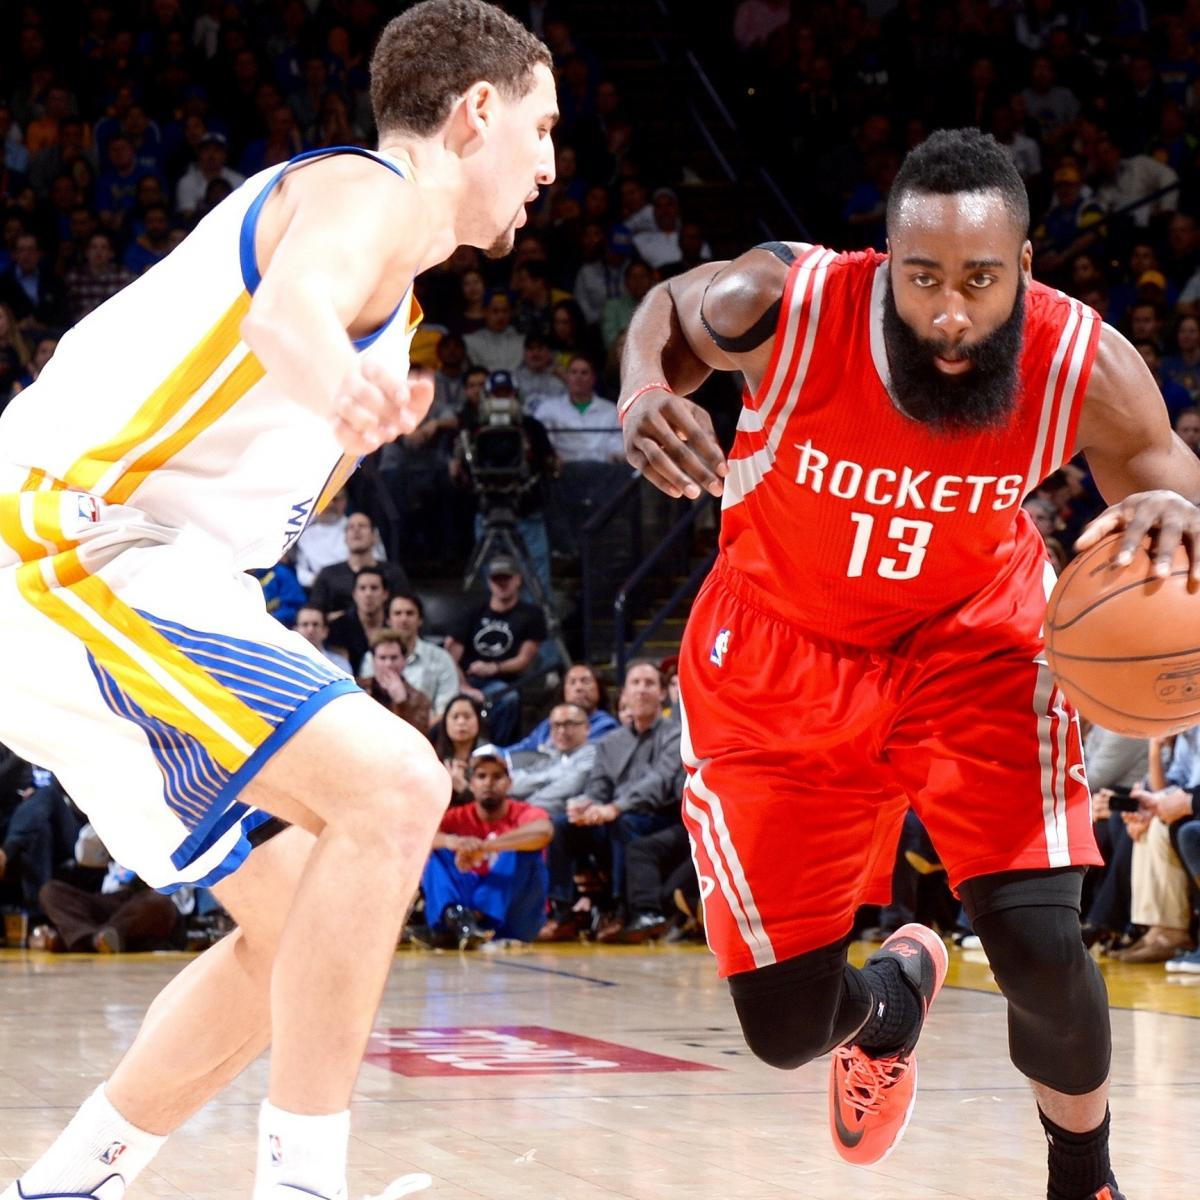 Rockets Vs. Warriors: Analysis And Predictions For Western